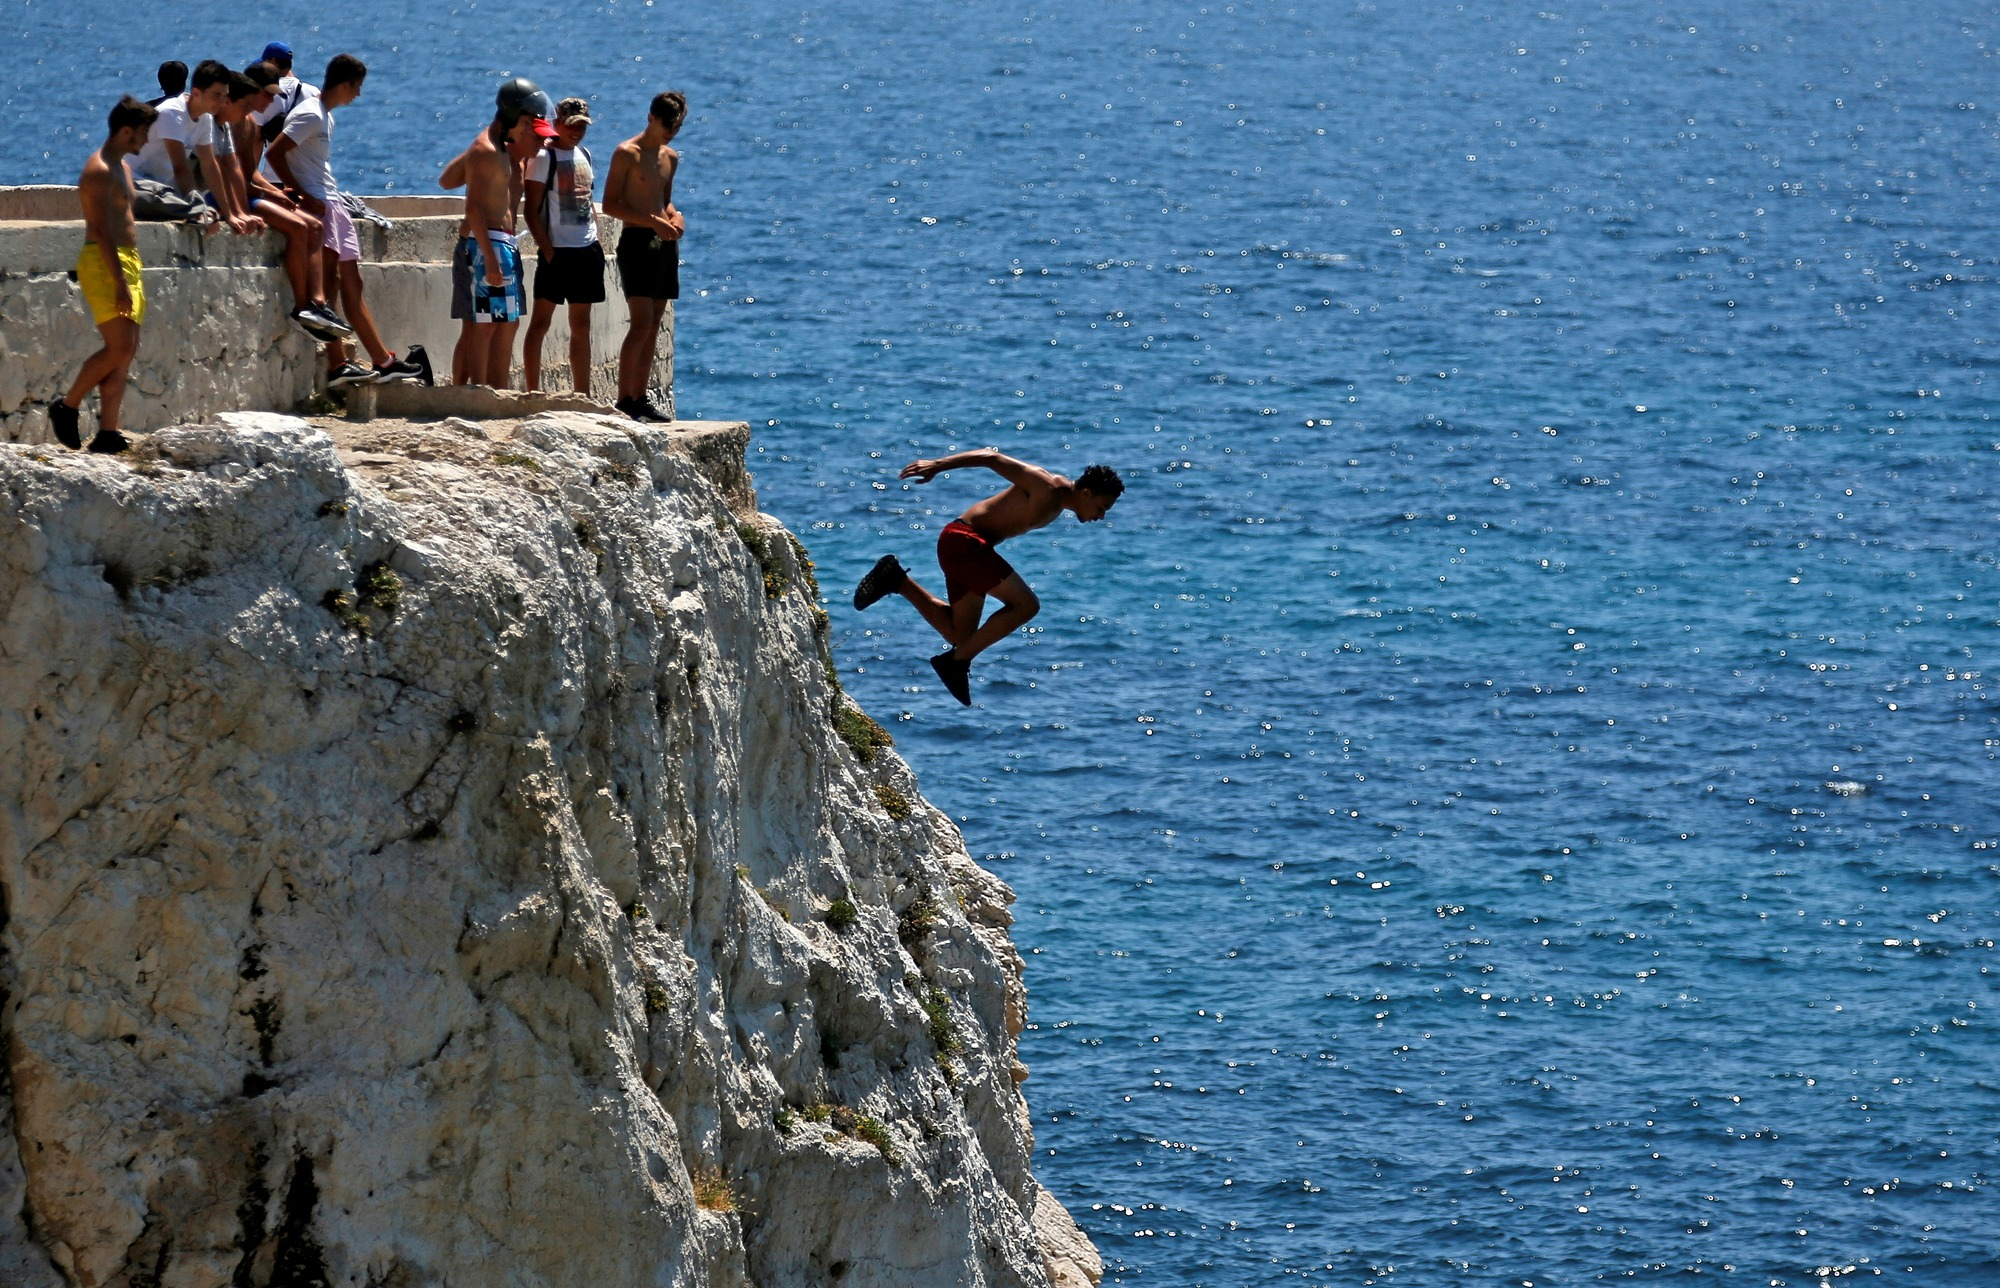 A teenager dives into the Mediterranean Sea in Marseille, France.